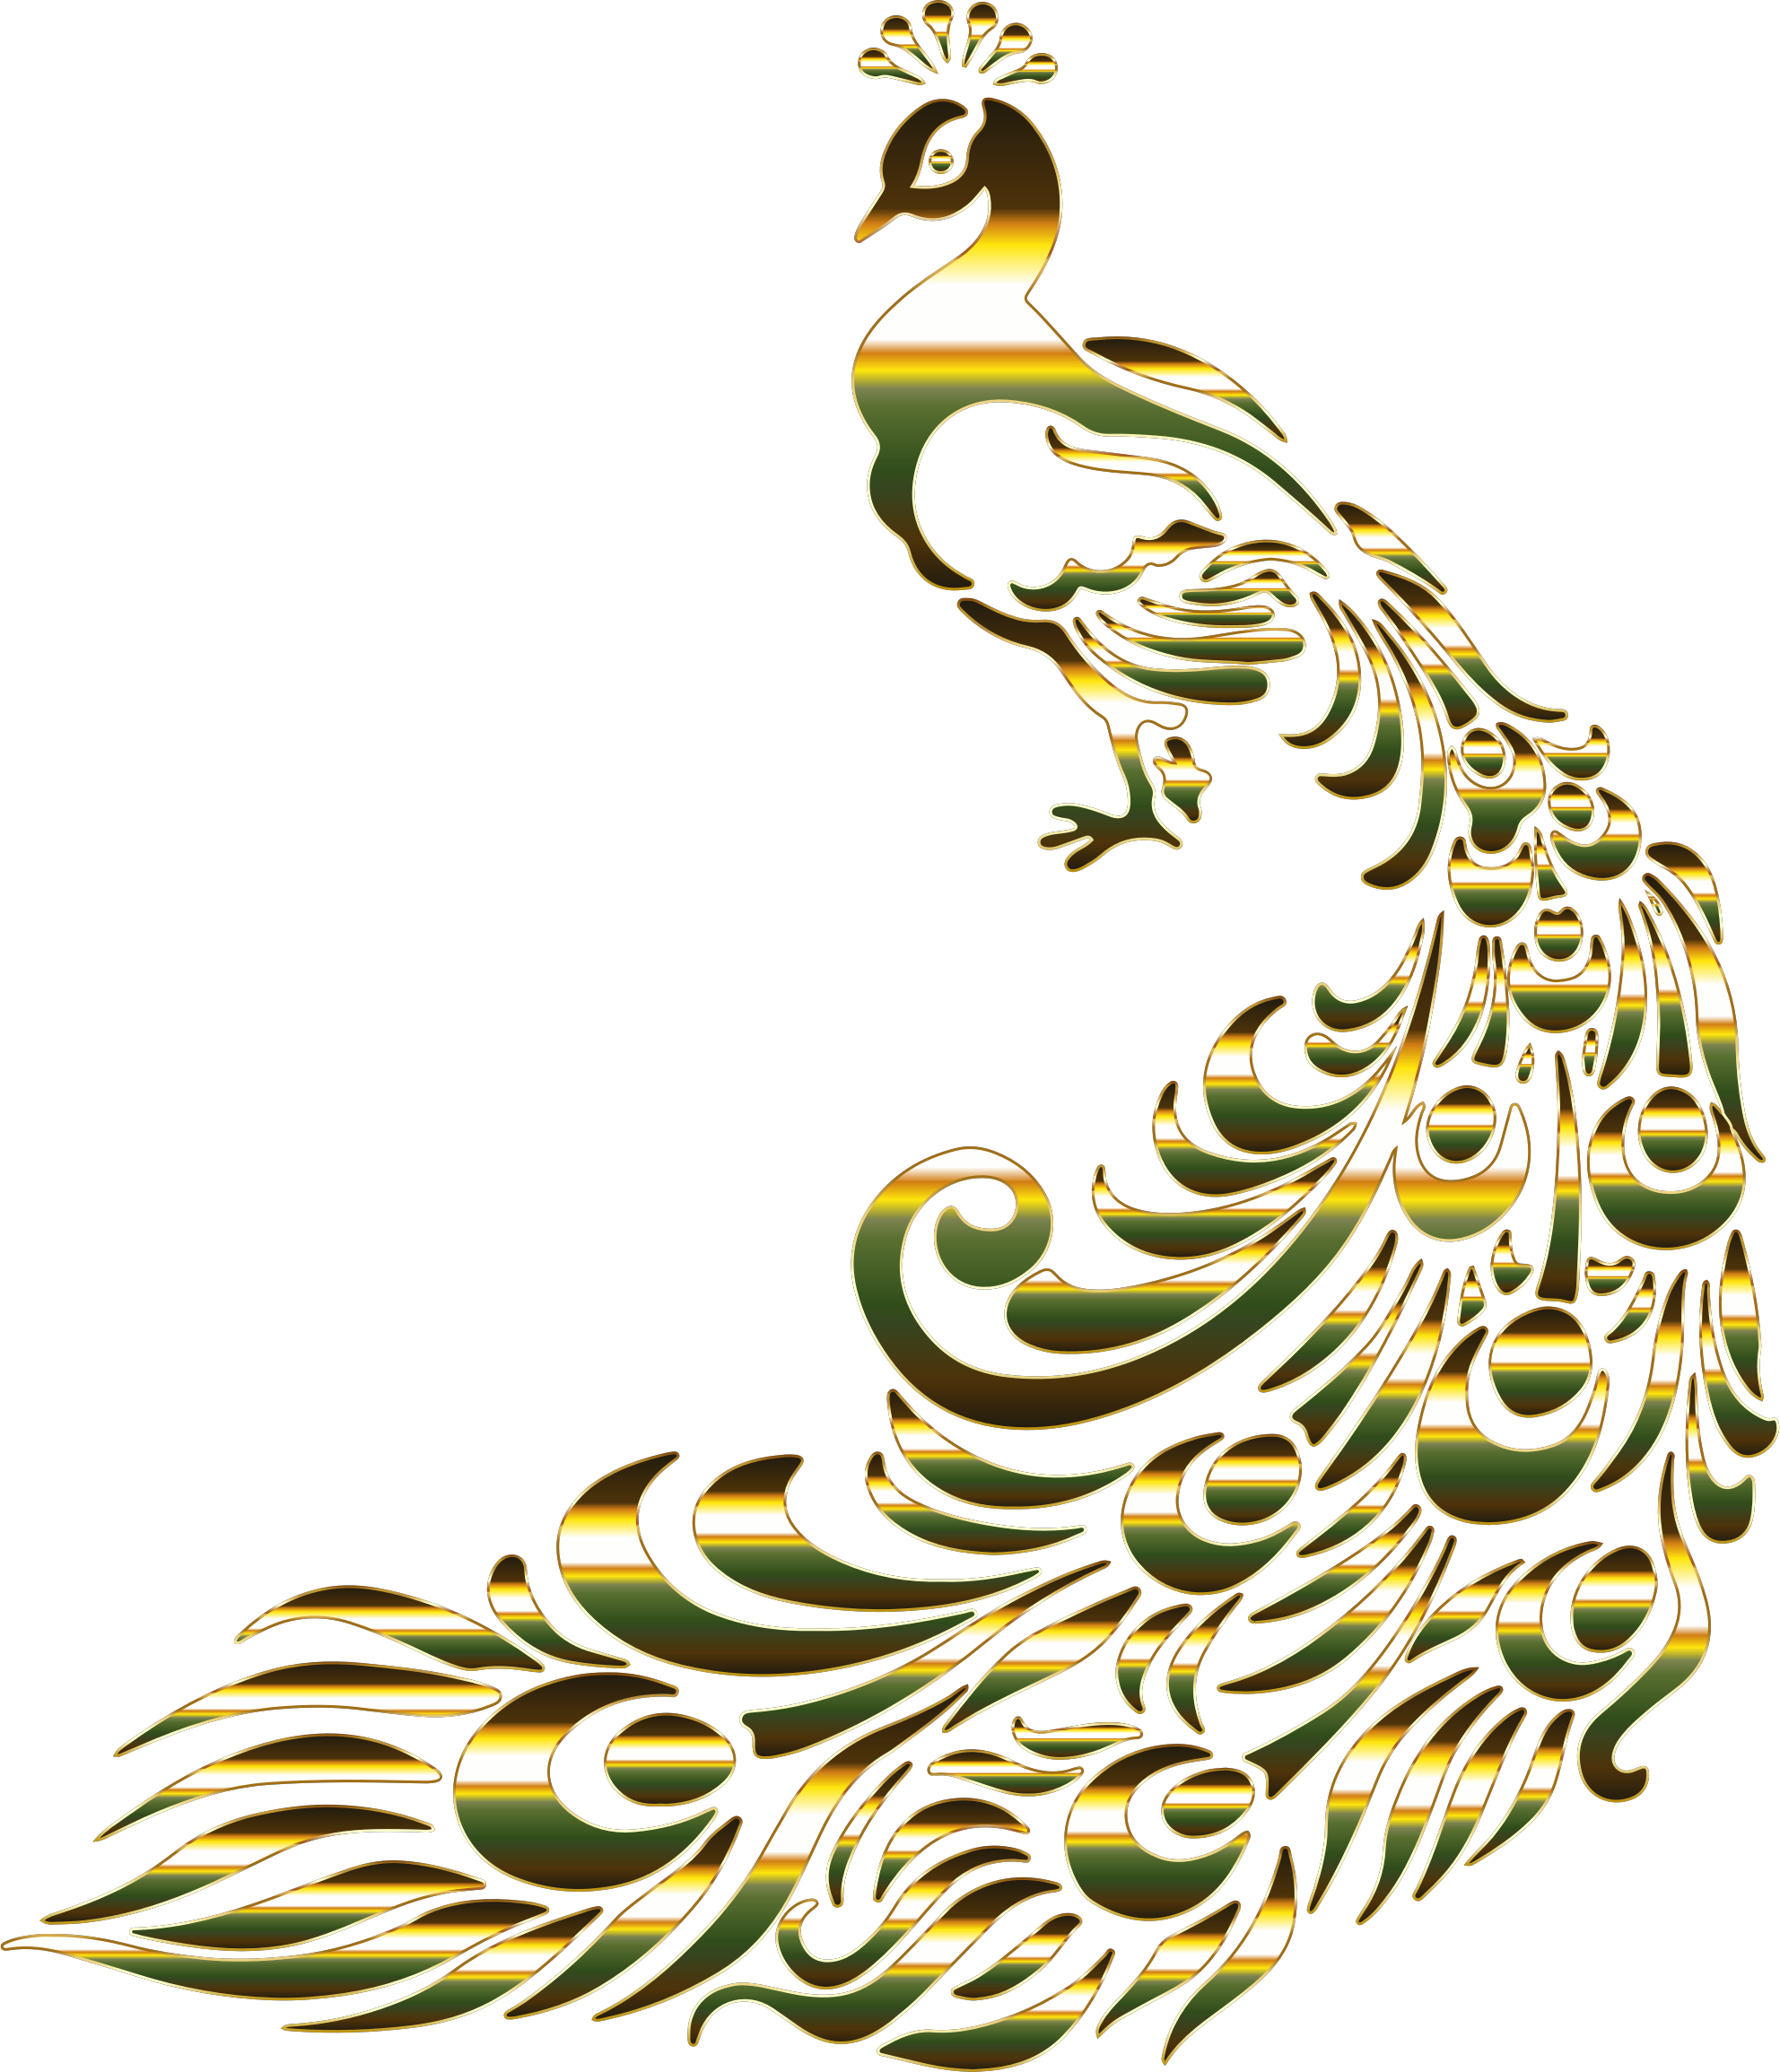 Peacock clipart gold peacock. Chromatic no background big